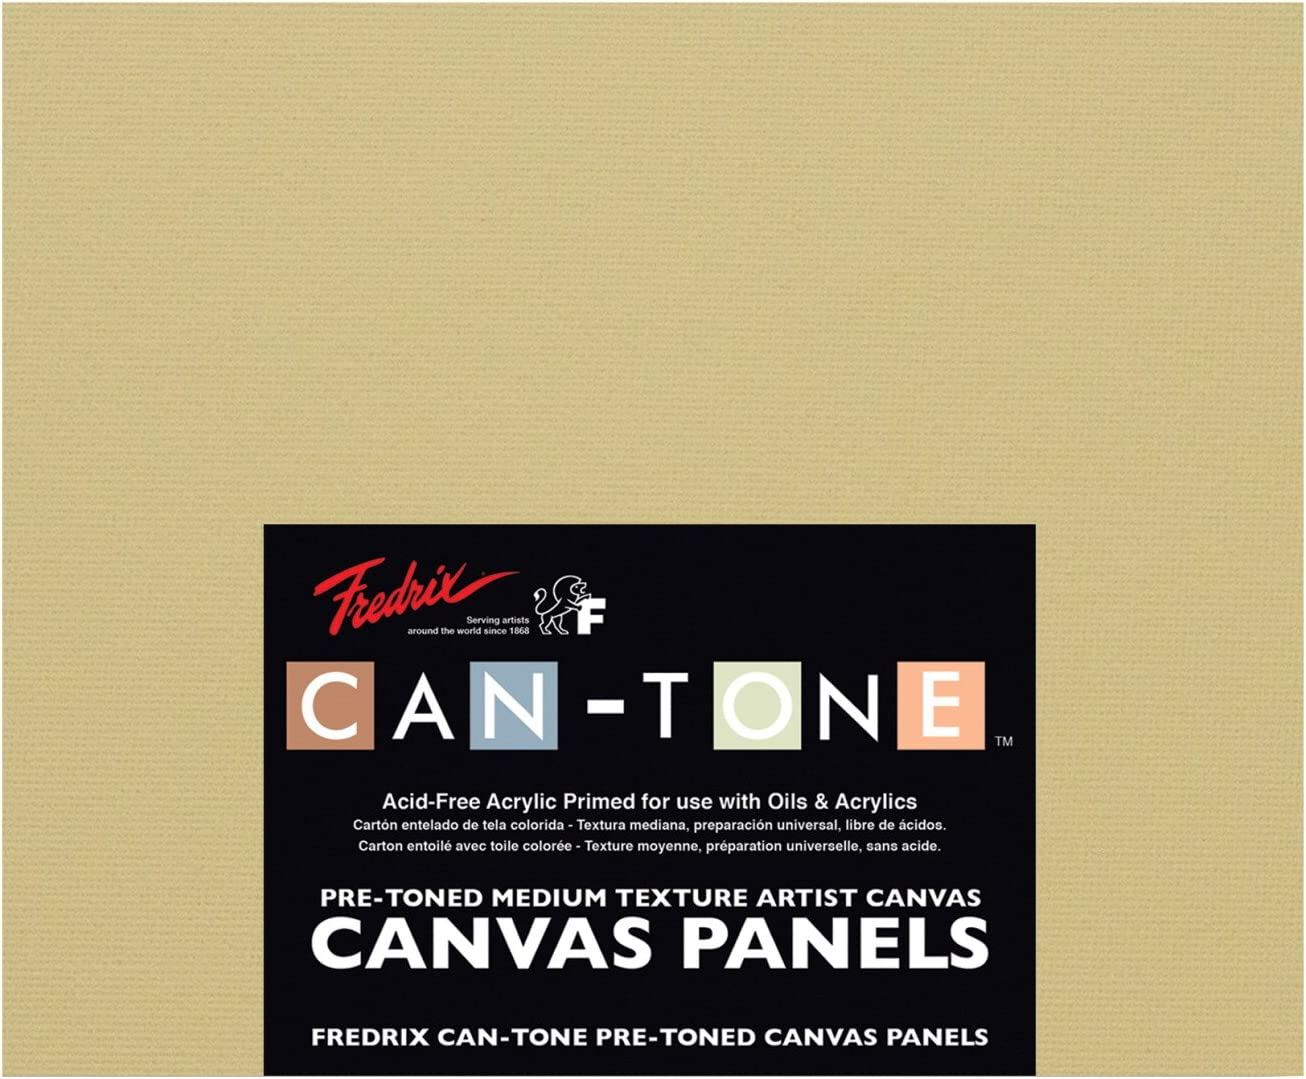 Fredrix Can-Tone Canvas Pads 5 x 5 Inches 8 Sheets Multicolor